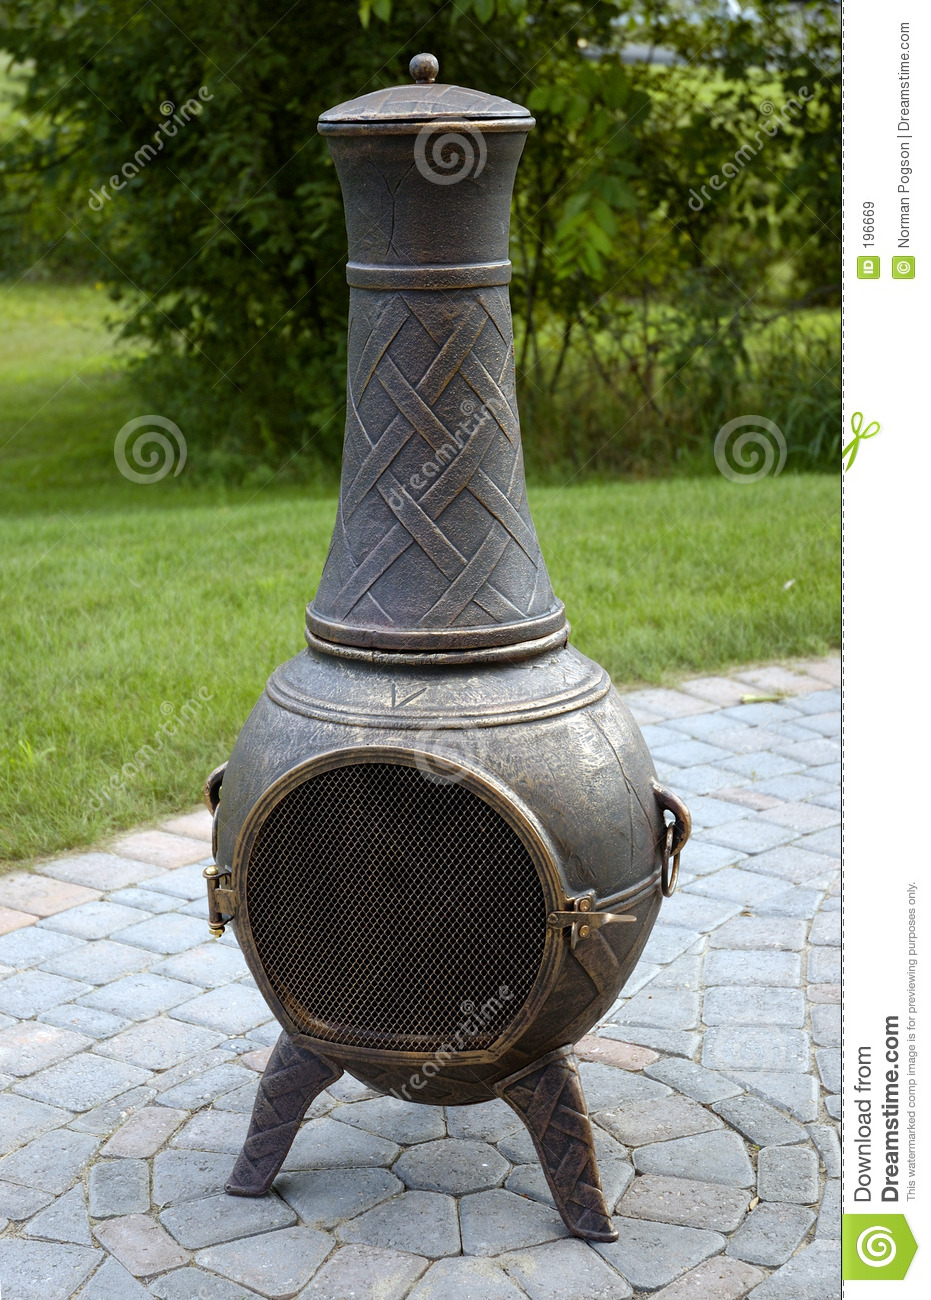 Chiminea Fire Pot In Unique Design For Patio Furniture Ideas